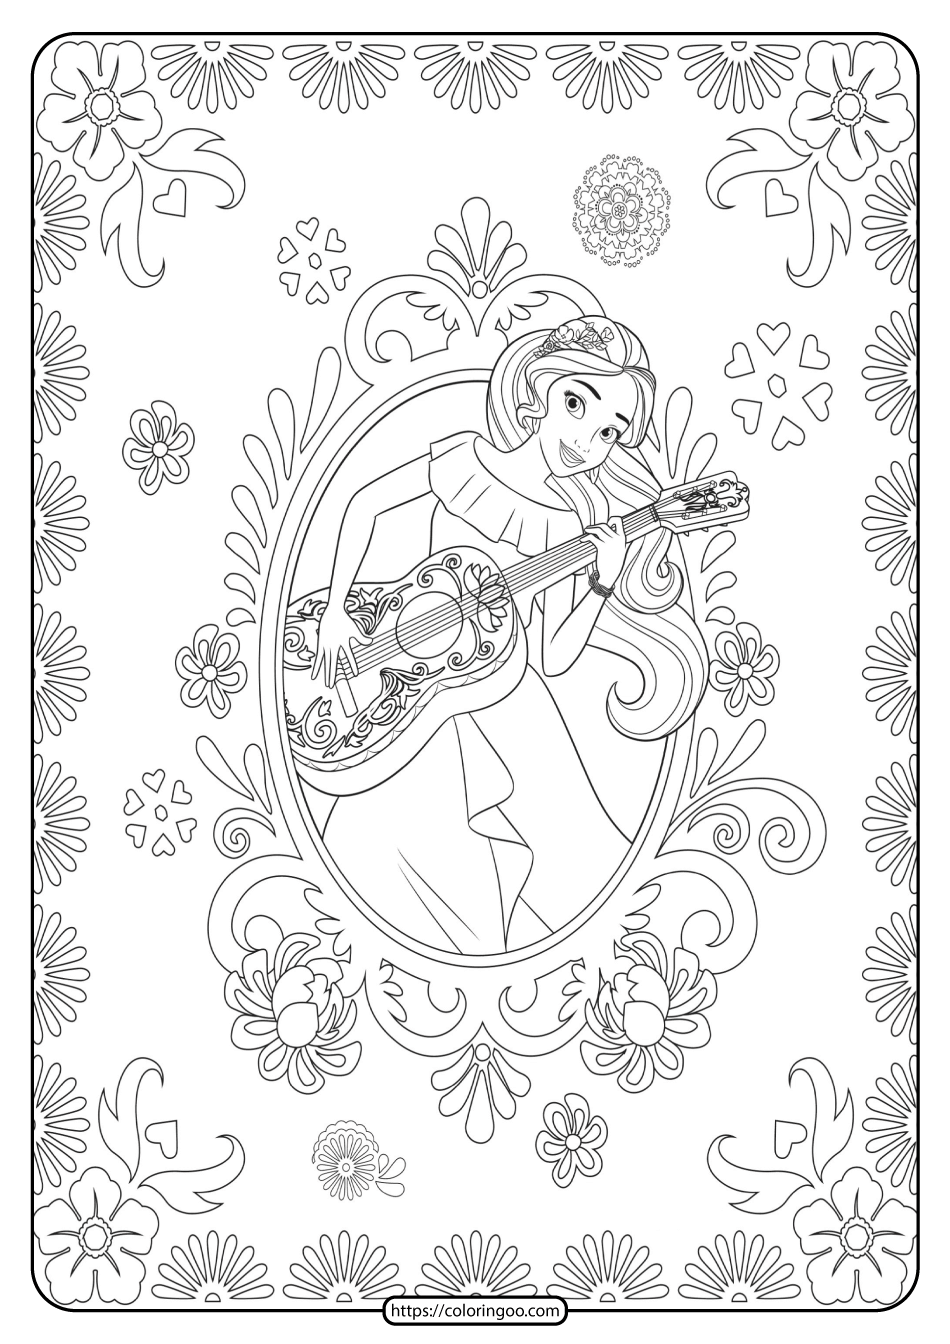 Princess Elena Of Avalor Pdf Coloring Pages